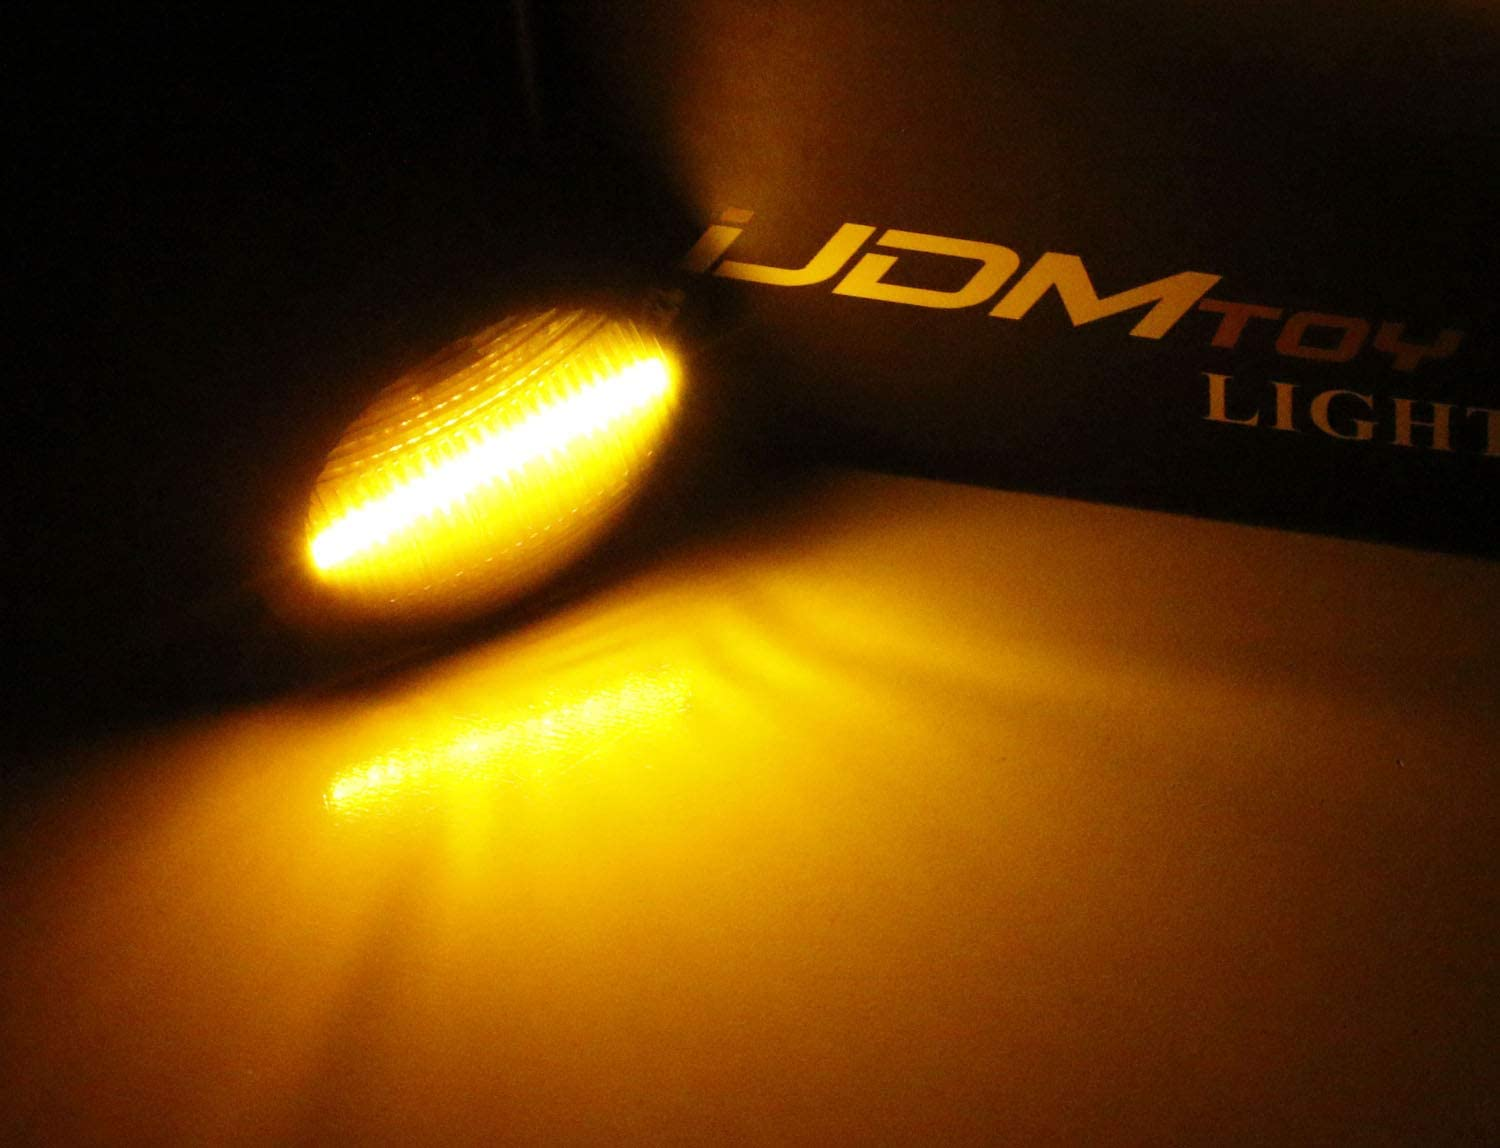 Powered by 20-SMD LED iJDMTOY Smoked Lens Amber Full LED Fender Side Marker Light Kit For 2007-up Fiat 500 500e 500c Abarth Replace OEM Sidemarker Lamps